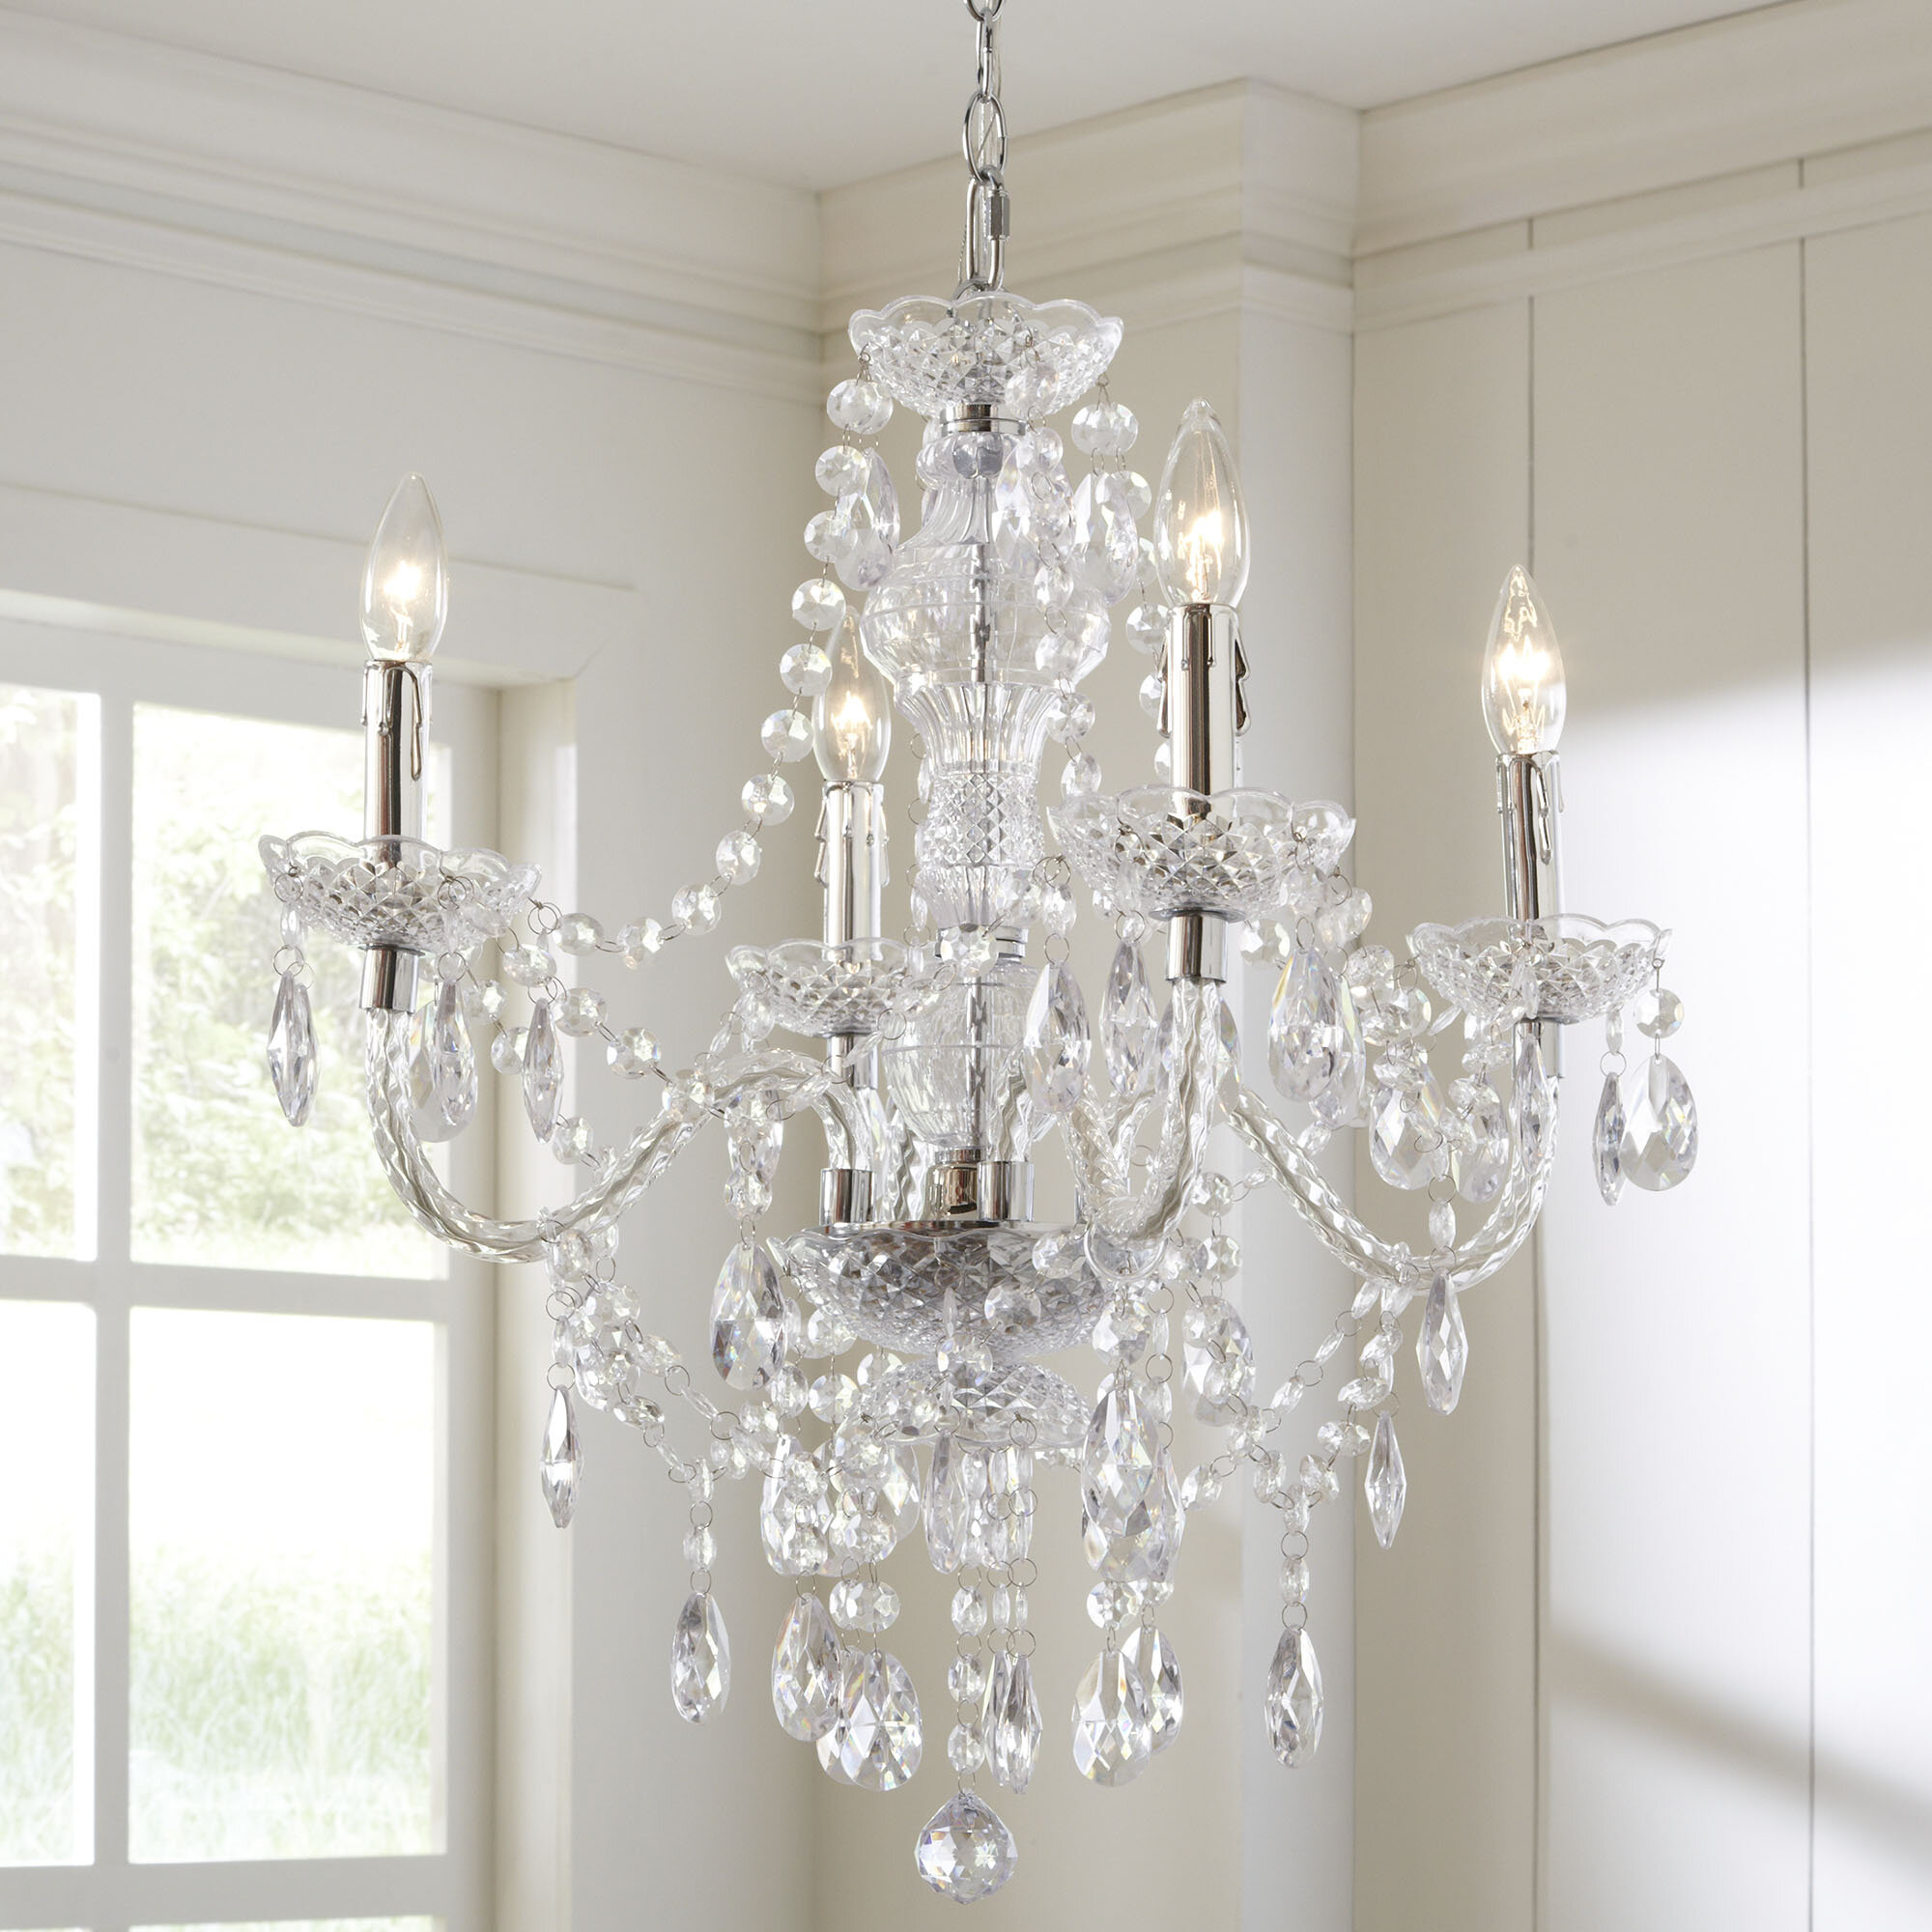 w x long chain cord chandelier designs k cover